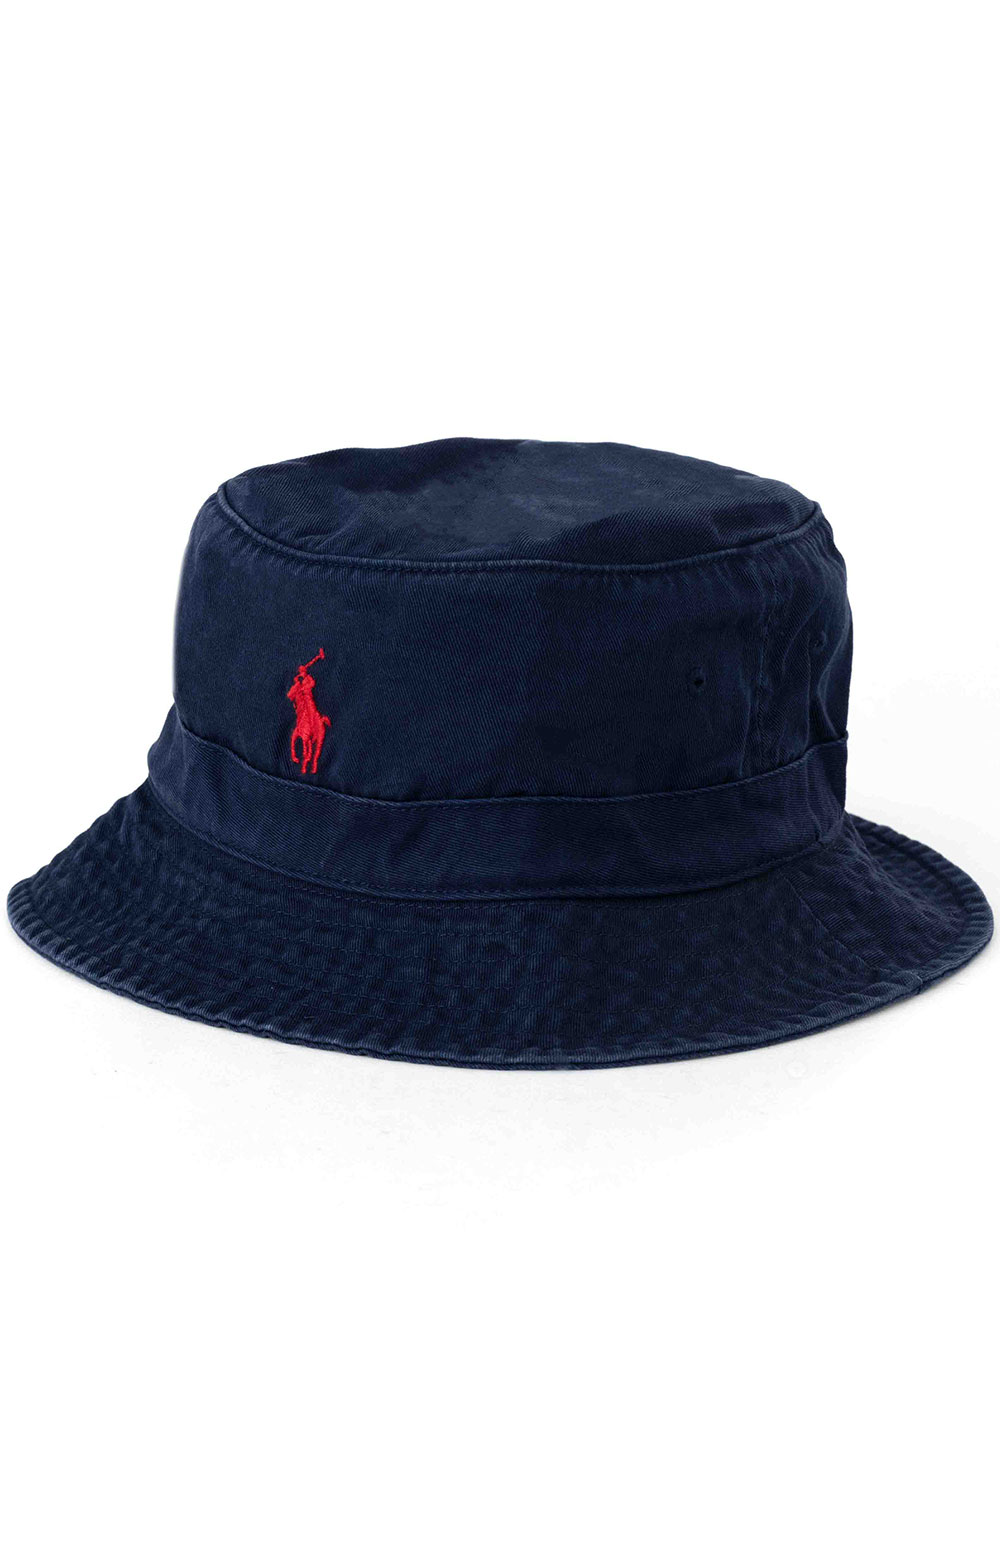 Loft Bucket Hat - Blue